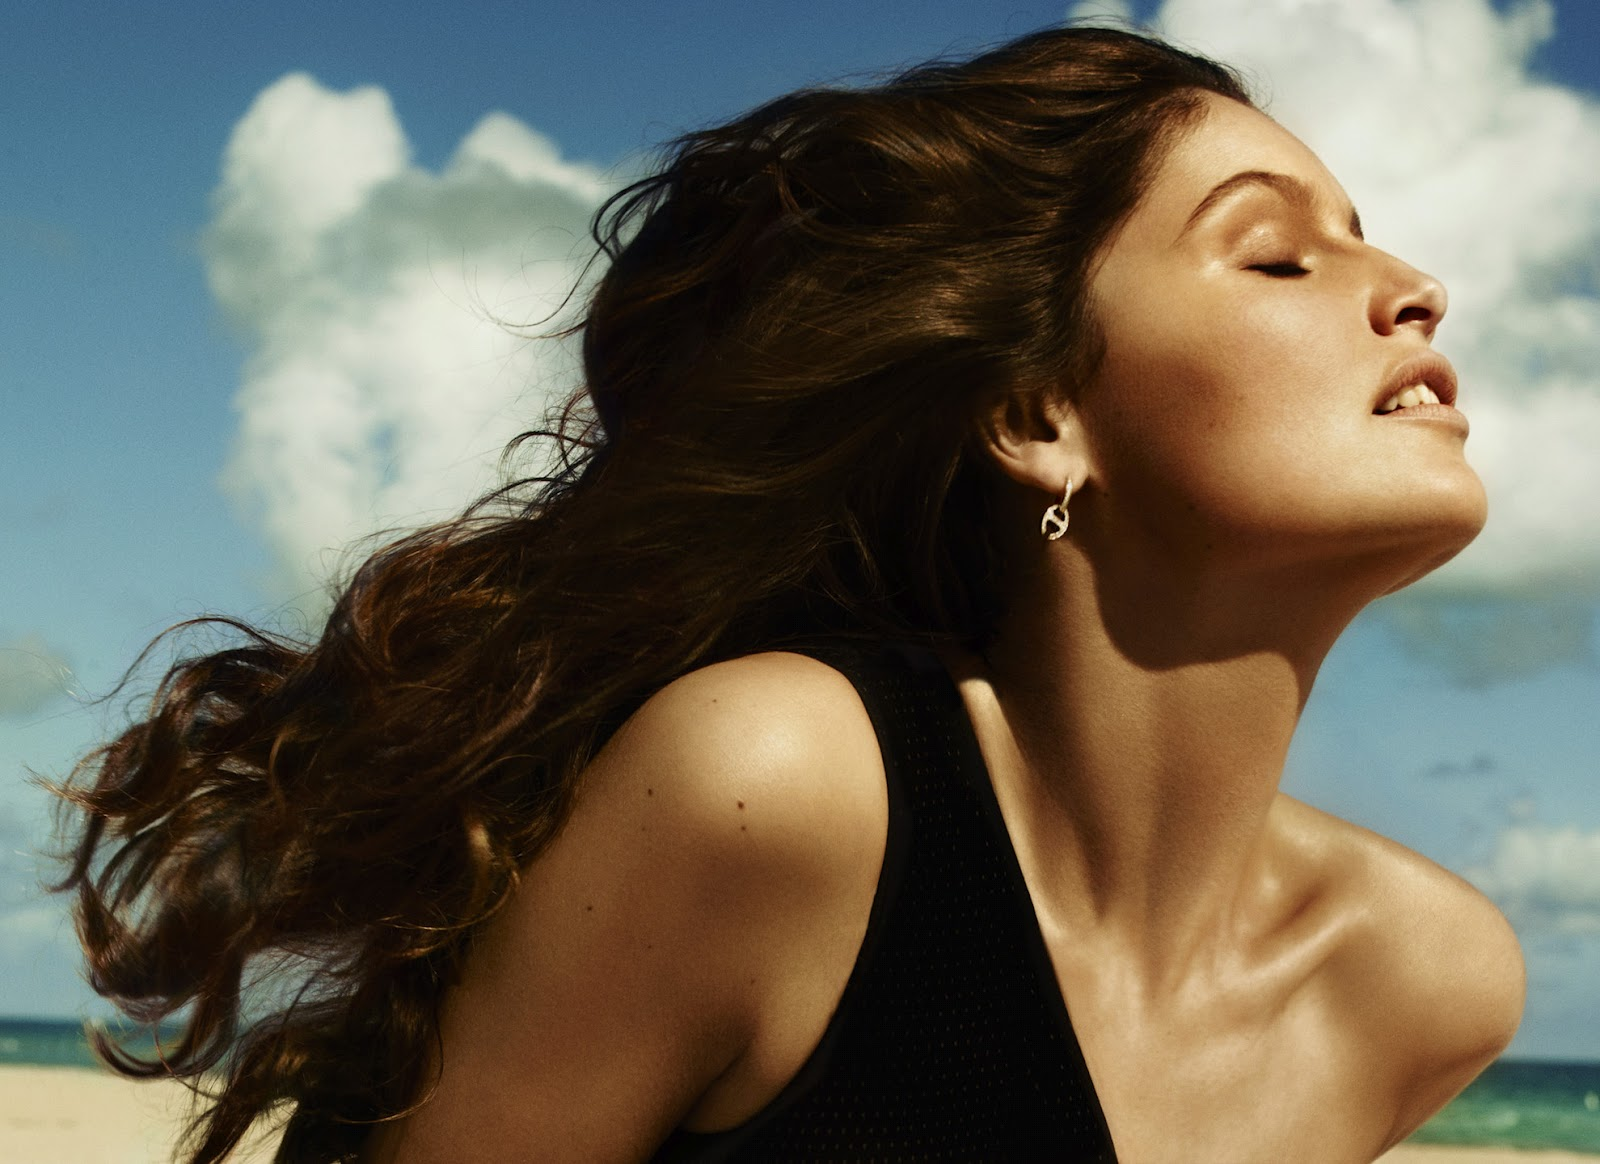 Laetitia casta biography and photos girls idols wallpapers and biography - Canta casta diva ...